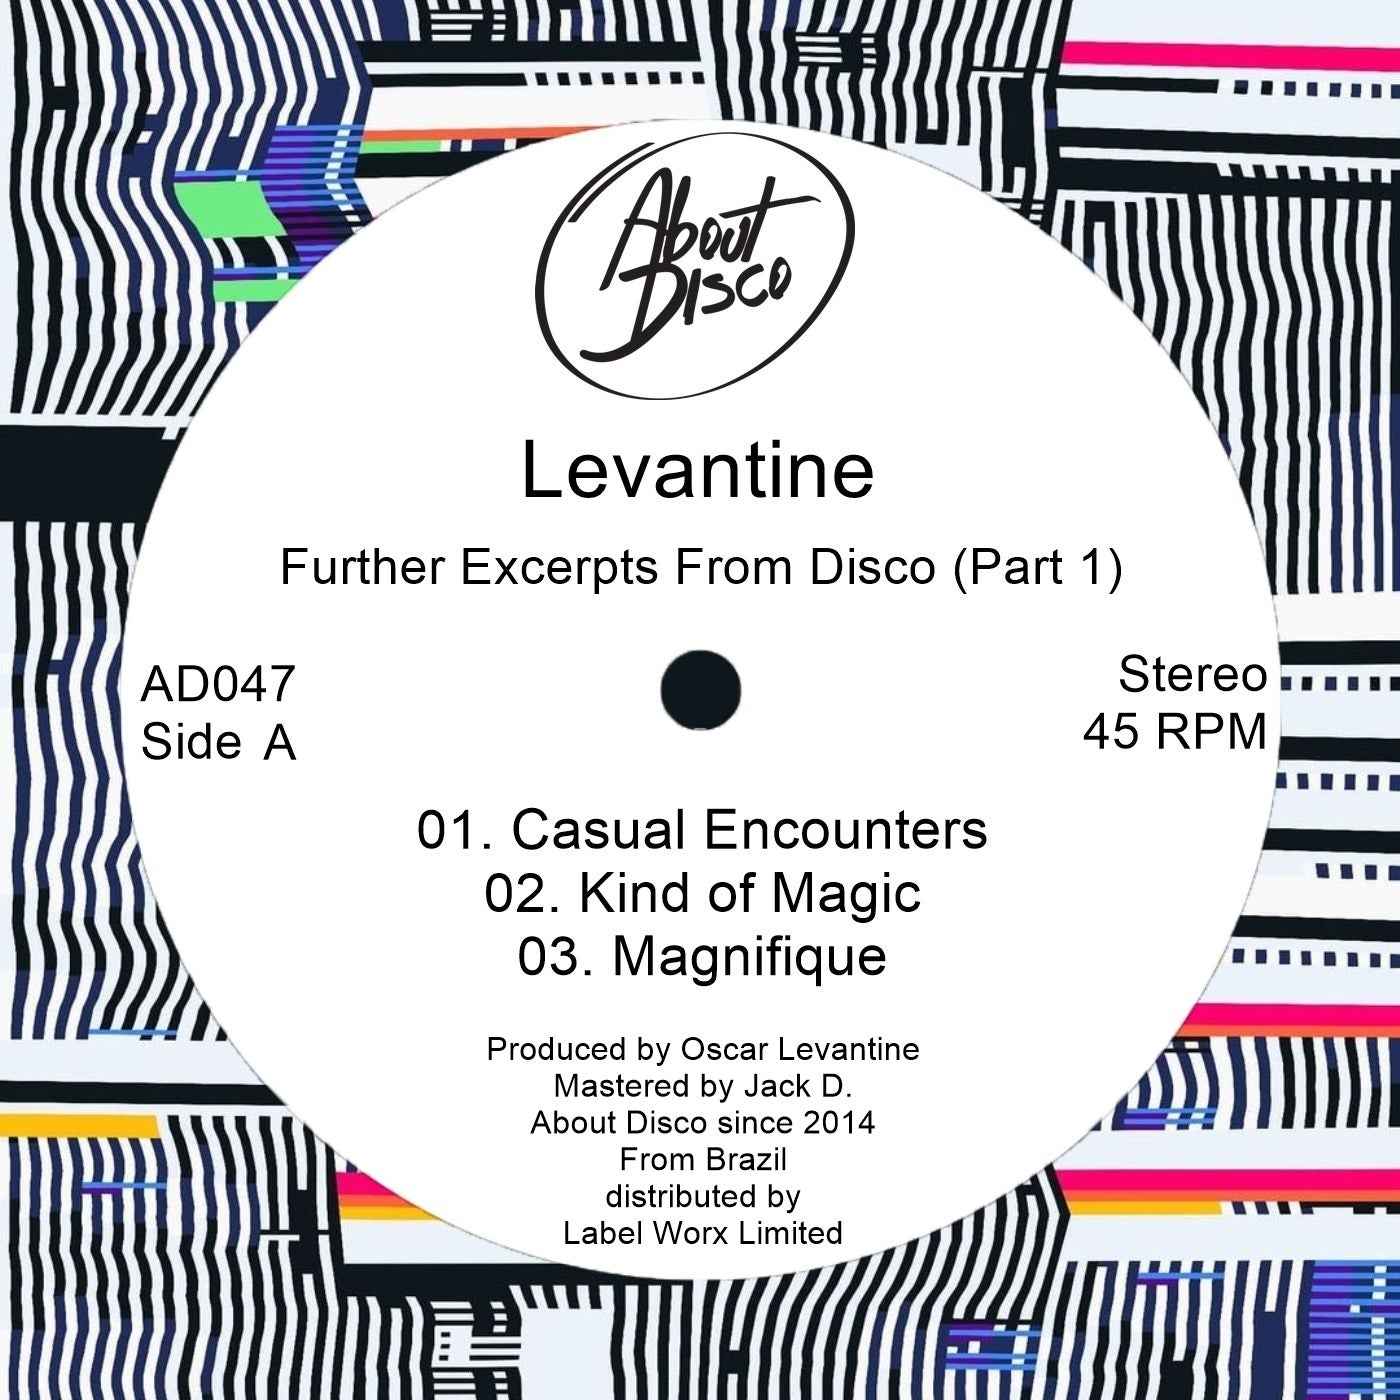 Levantine - Further Excerpts from Disco, Pt. 1 (2021)